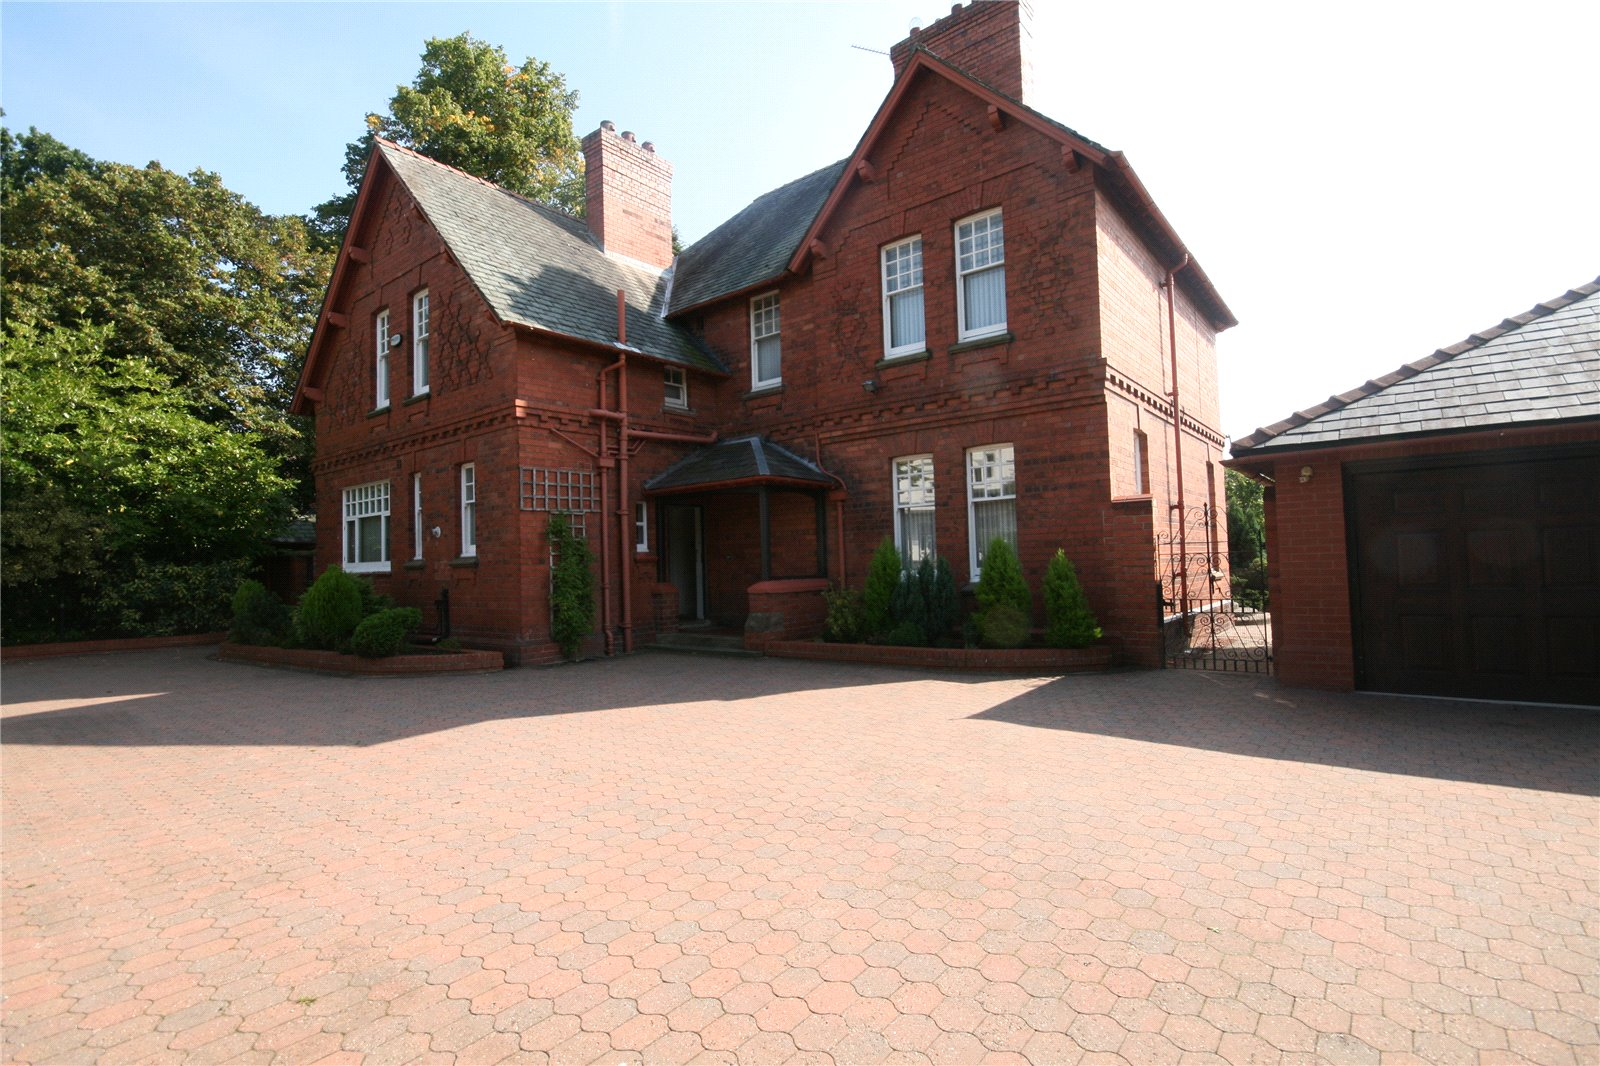 Whitegates Chester 5 Bedroom House For Sale In Hough Green